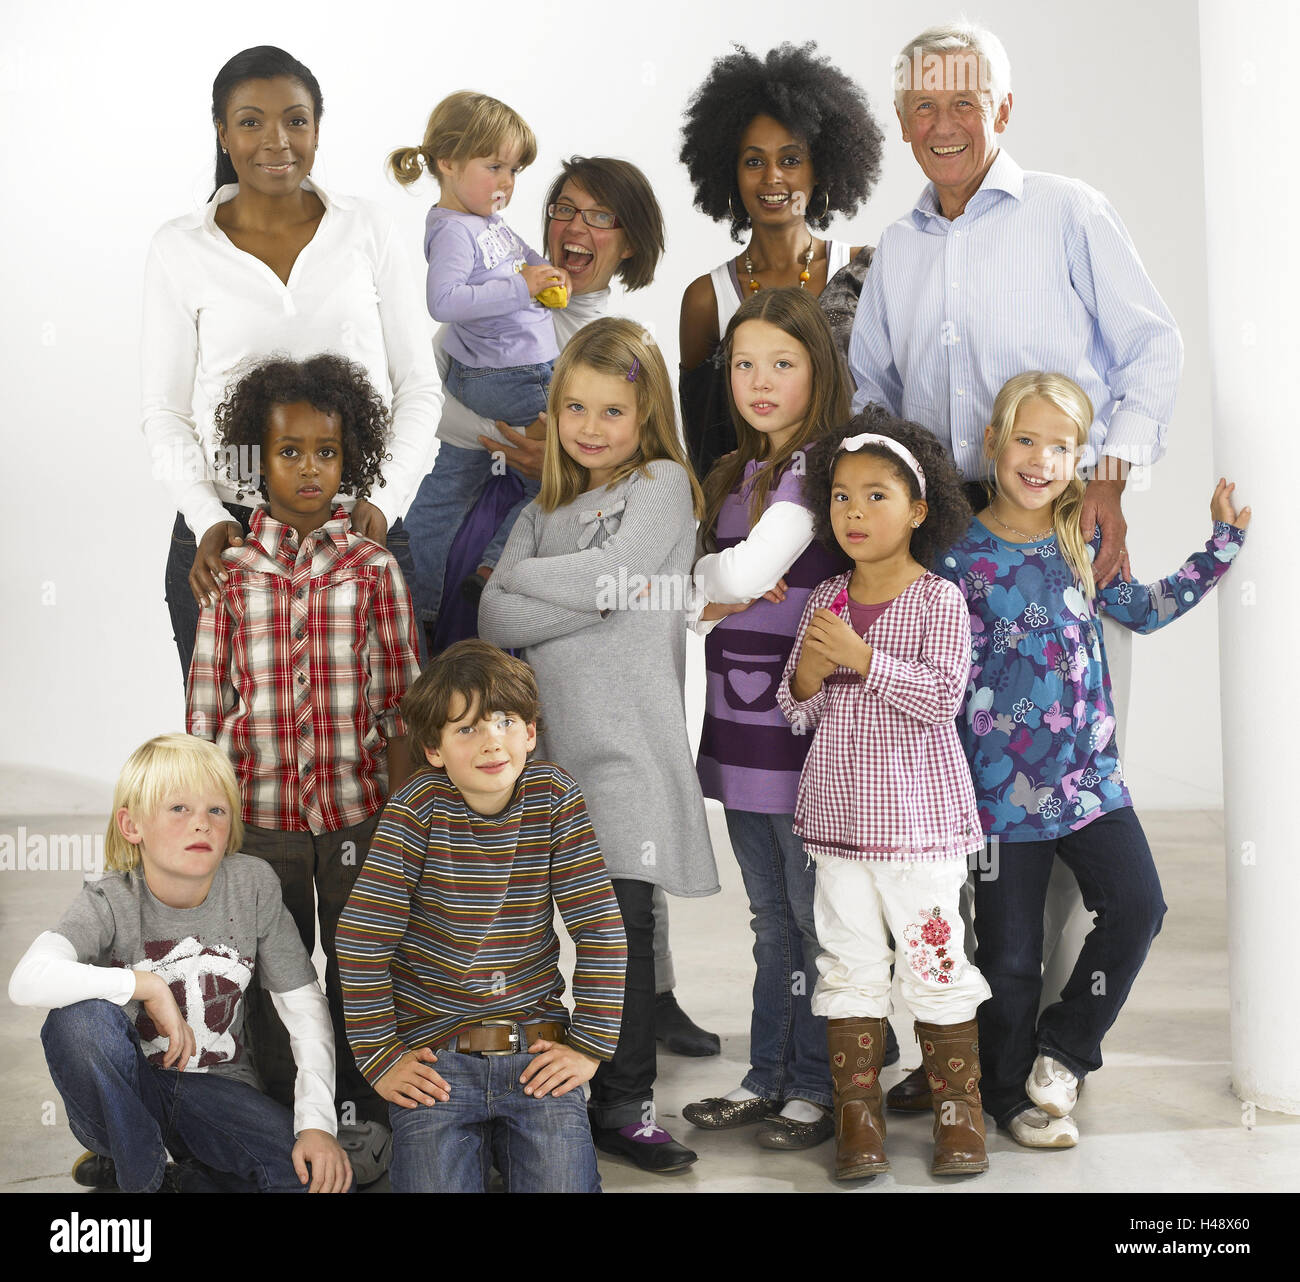 Women, man, children, nationality, passed away, laugh, happy, group picture, model released, people, adults, girls, - Stock Image